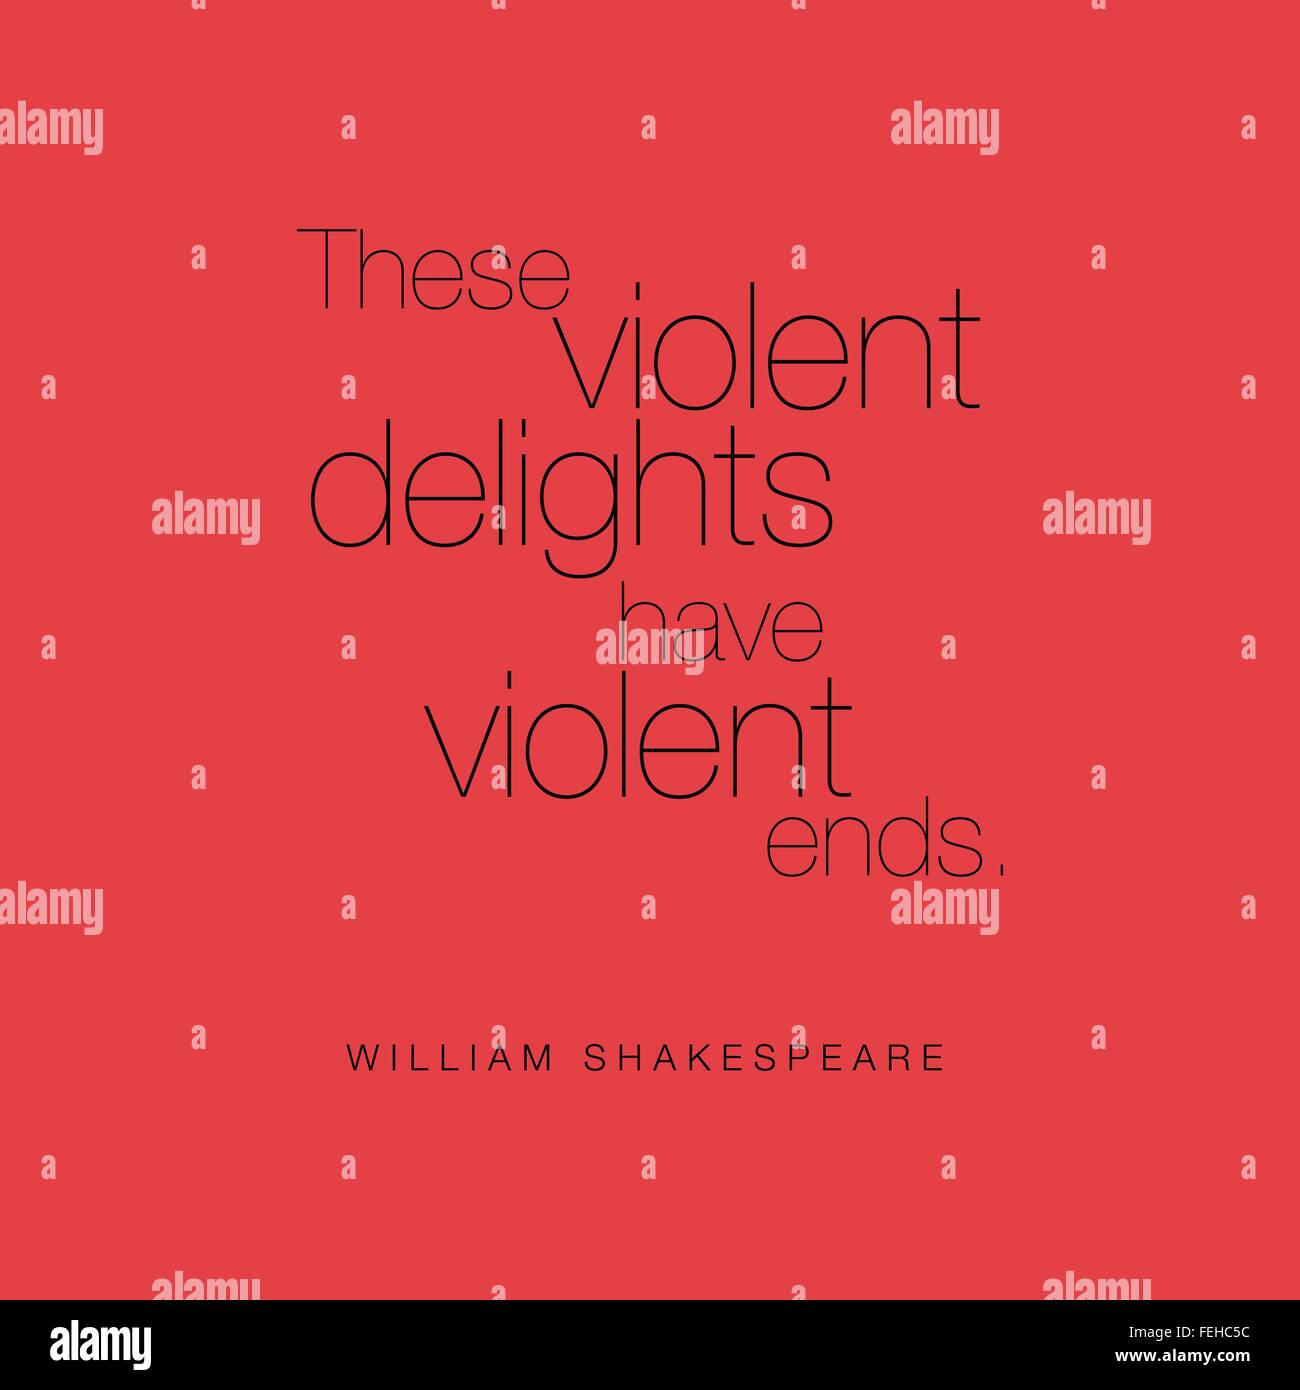 'These violent delights have violent ends.' William Shakespeare - Stock Vector